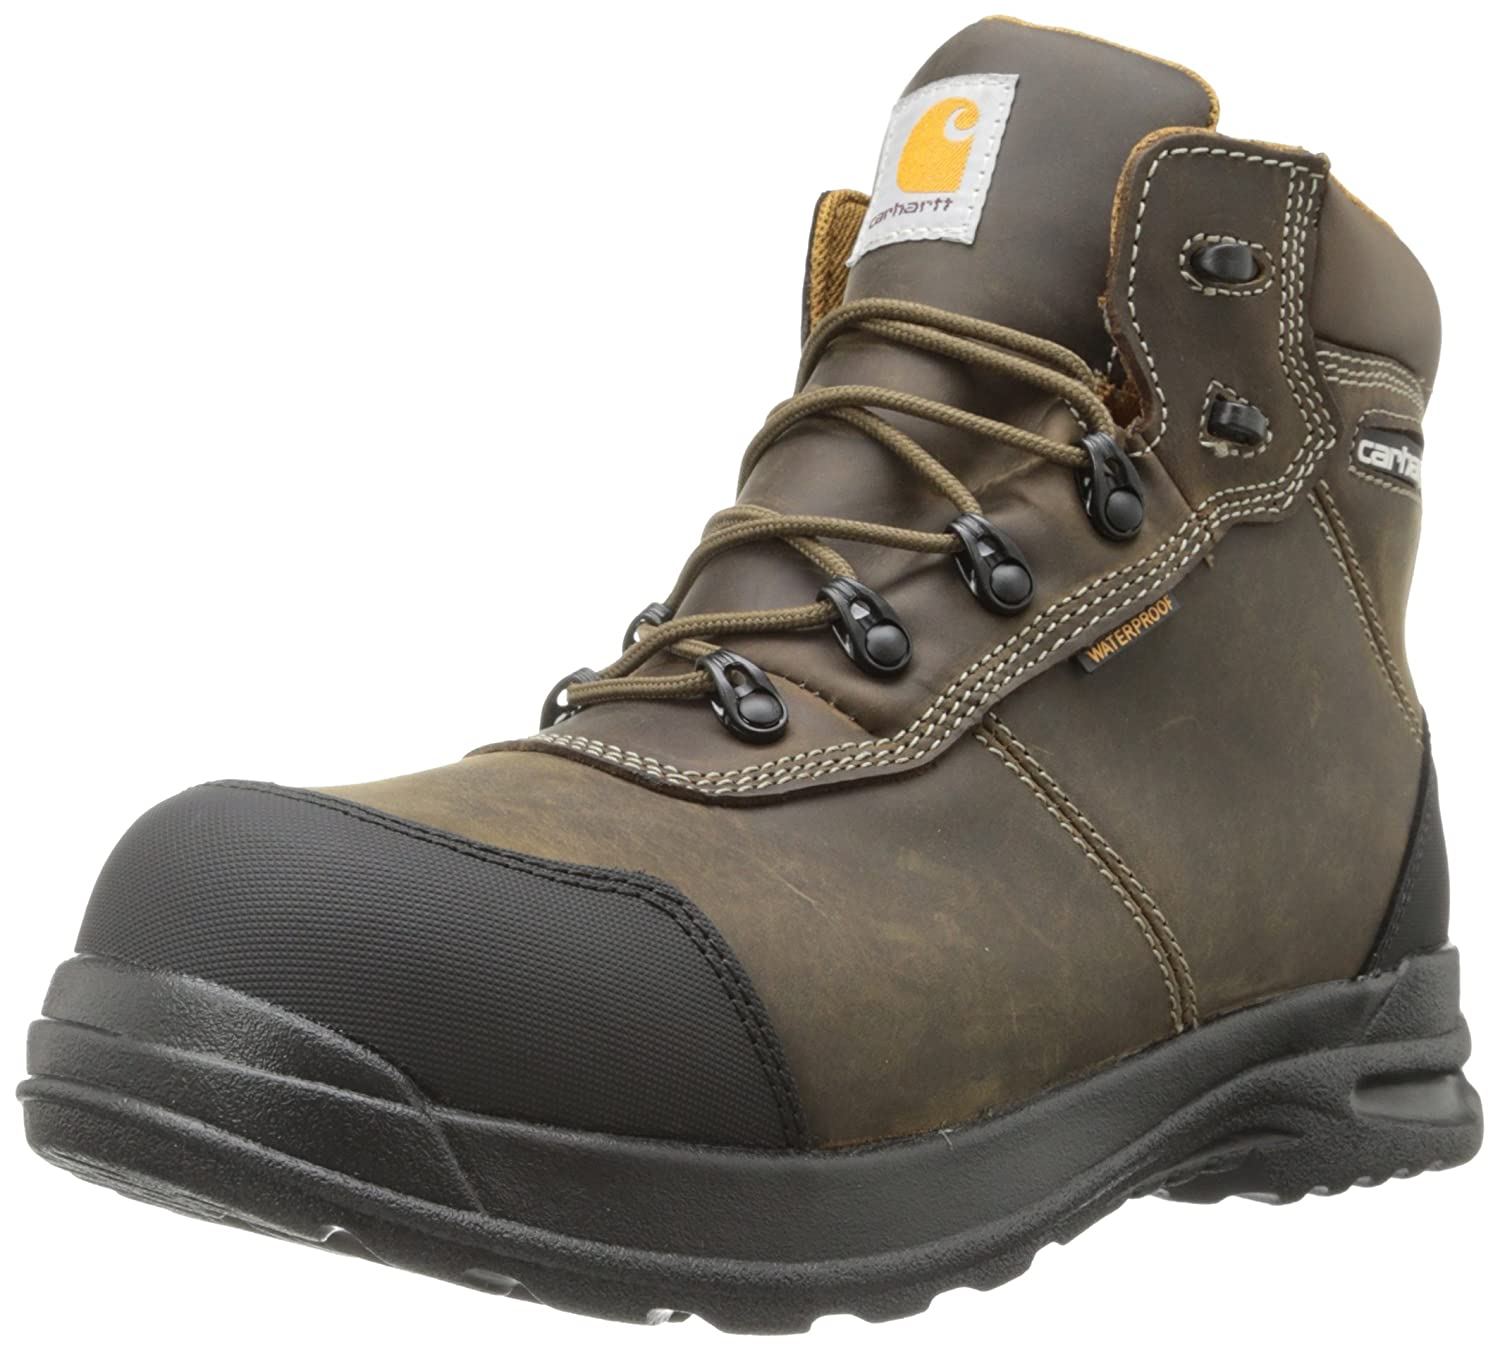 033138e6ebc Carhartt Men's CMH6317 Composite Toe Boot